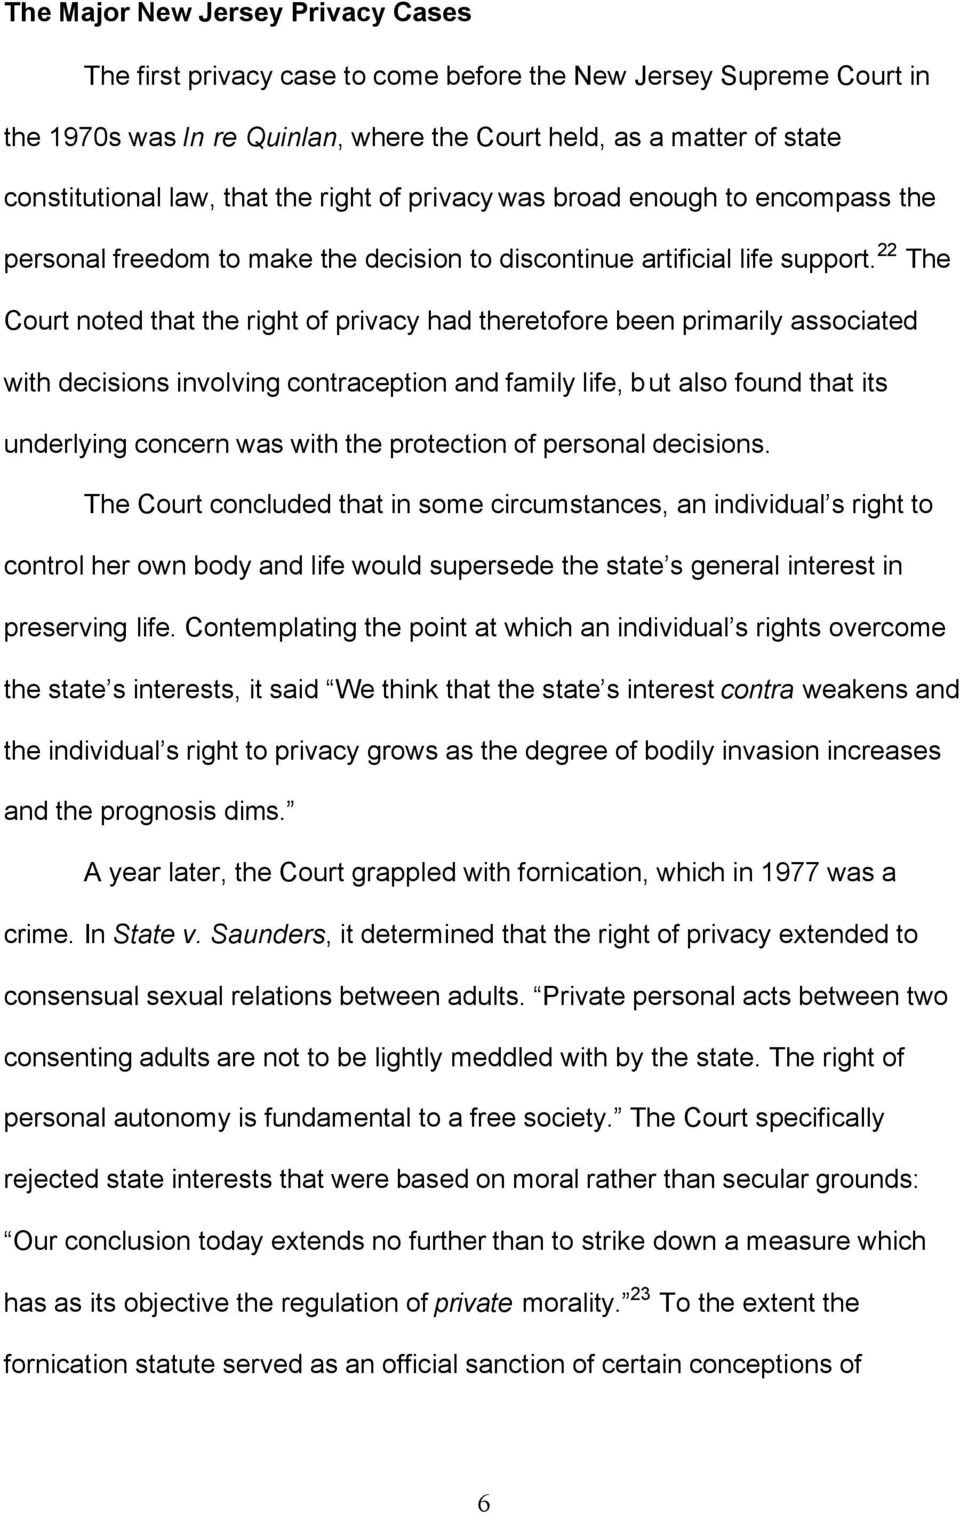 22 The Court noted that the right of privacy had theretofore been primarily associated with decisions involving contraception and family life, but also found that its underlying concern was with the